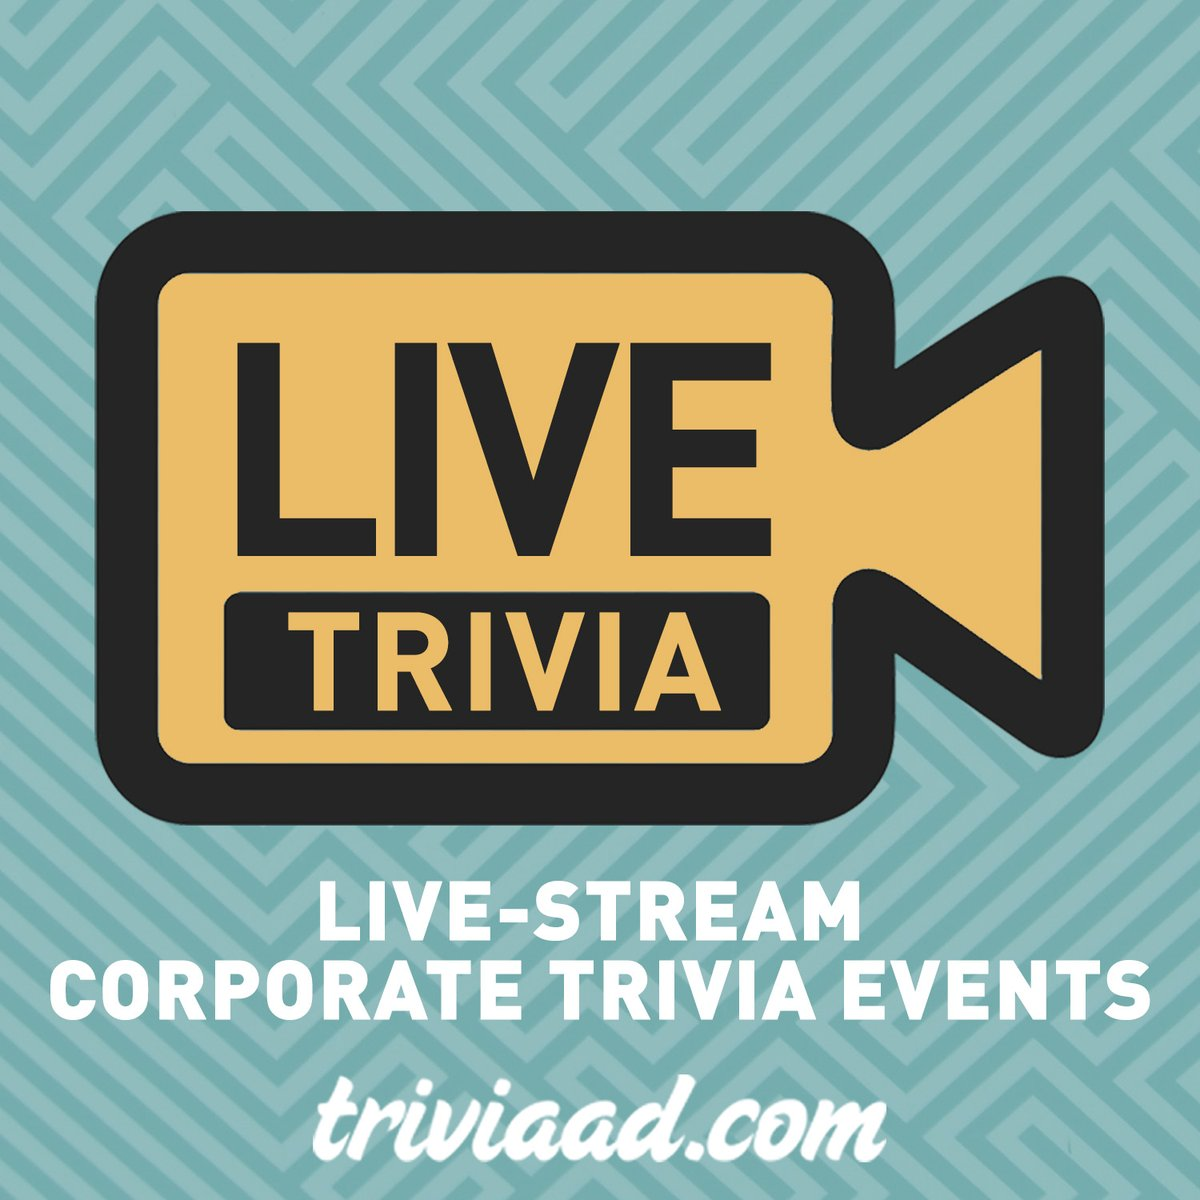 We're here to host your corporate or private virtual #trivia event. For more information, reach out to info@triviaad.com! #VirtualEvents #OnlineEvents #Zoom #VirtualTeamBuilding #TeamBuilding #VirtualHappyHour #SocialDistancing https://t.co/QOY4KSXmrF